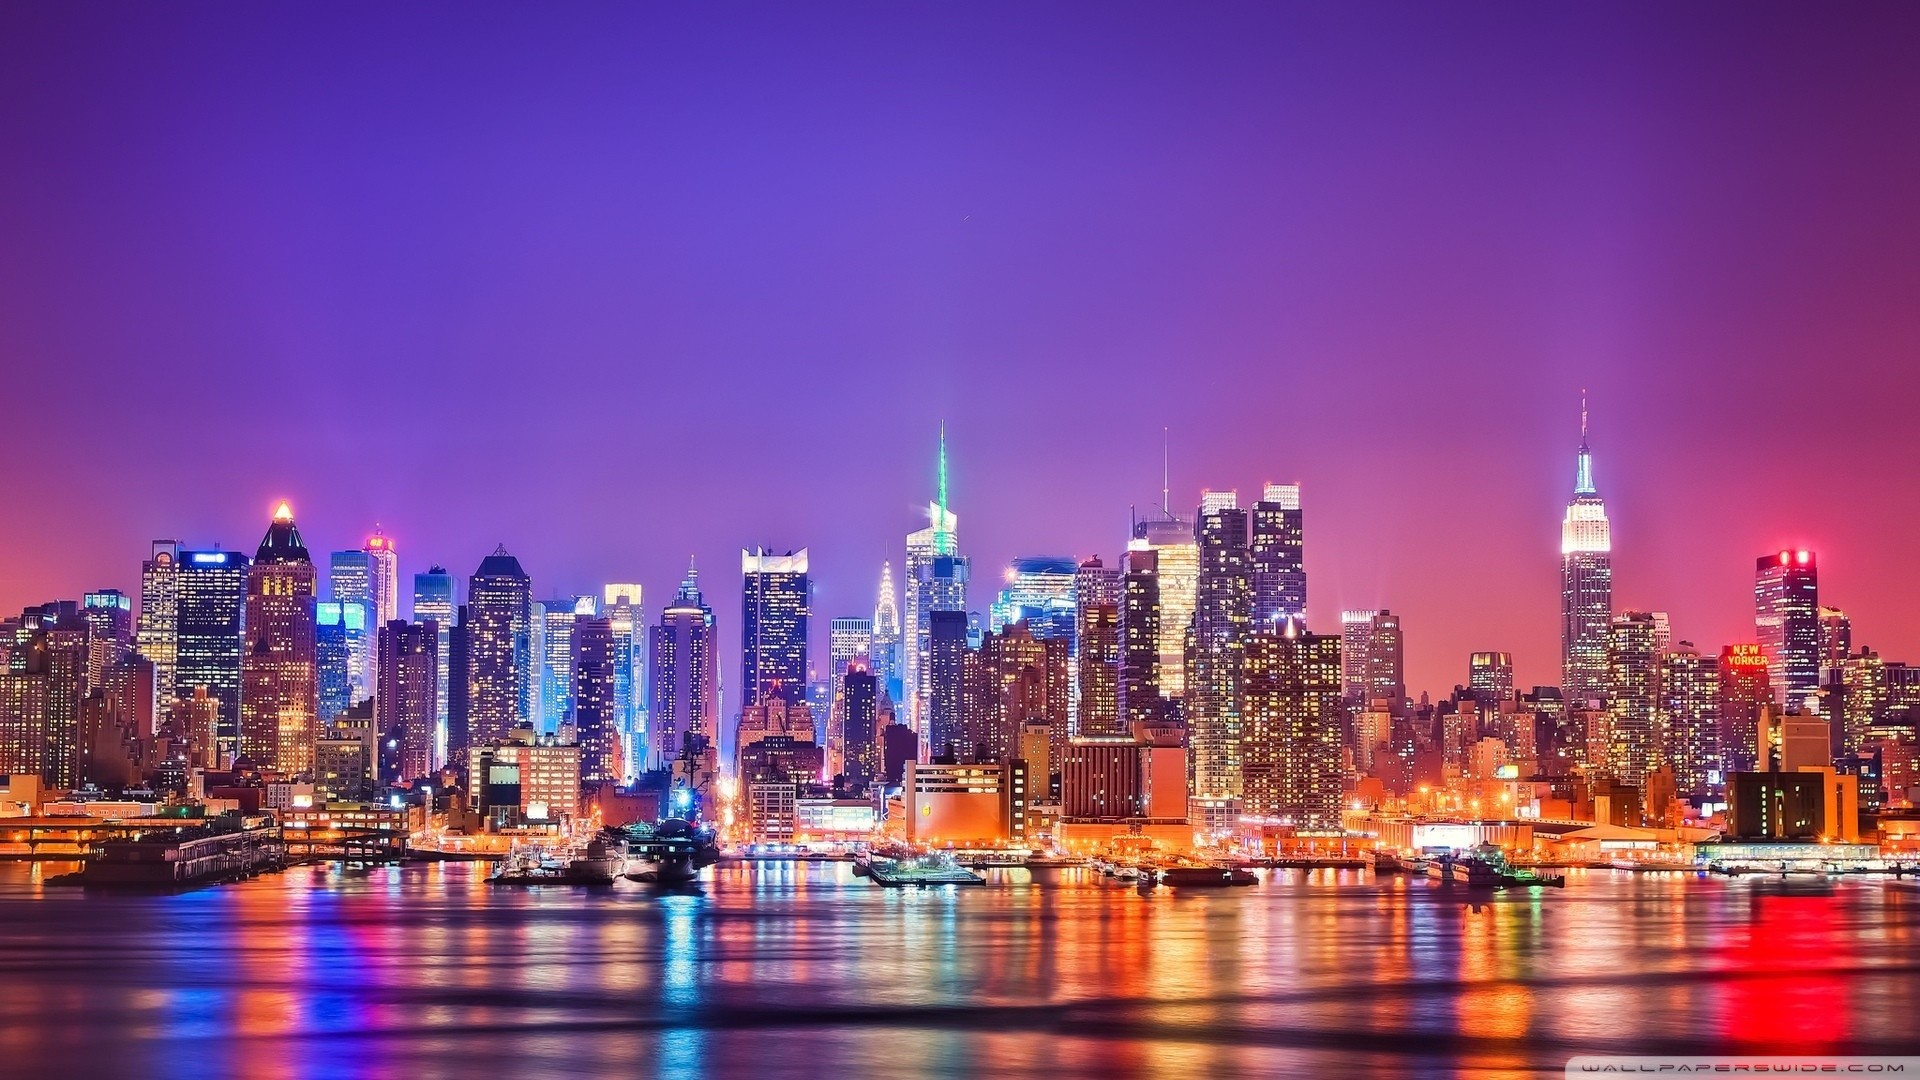 Nyc At Night Wallpaper 71 Pictures